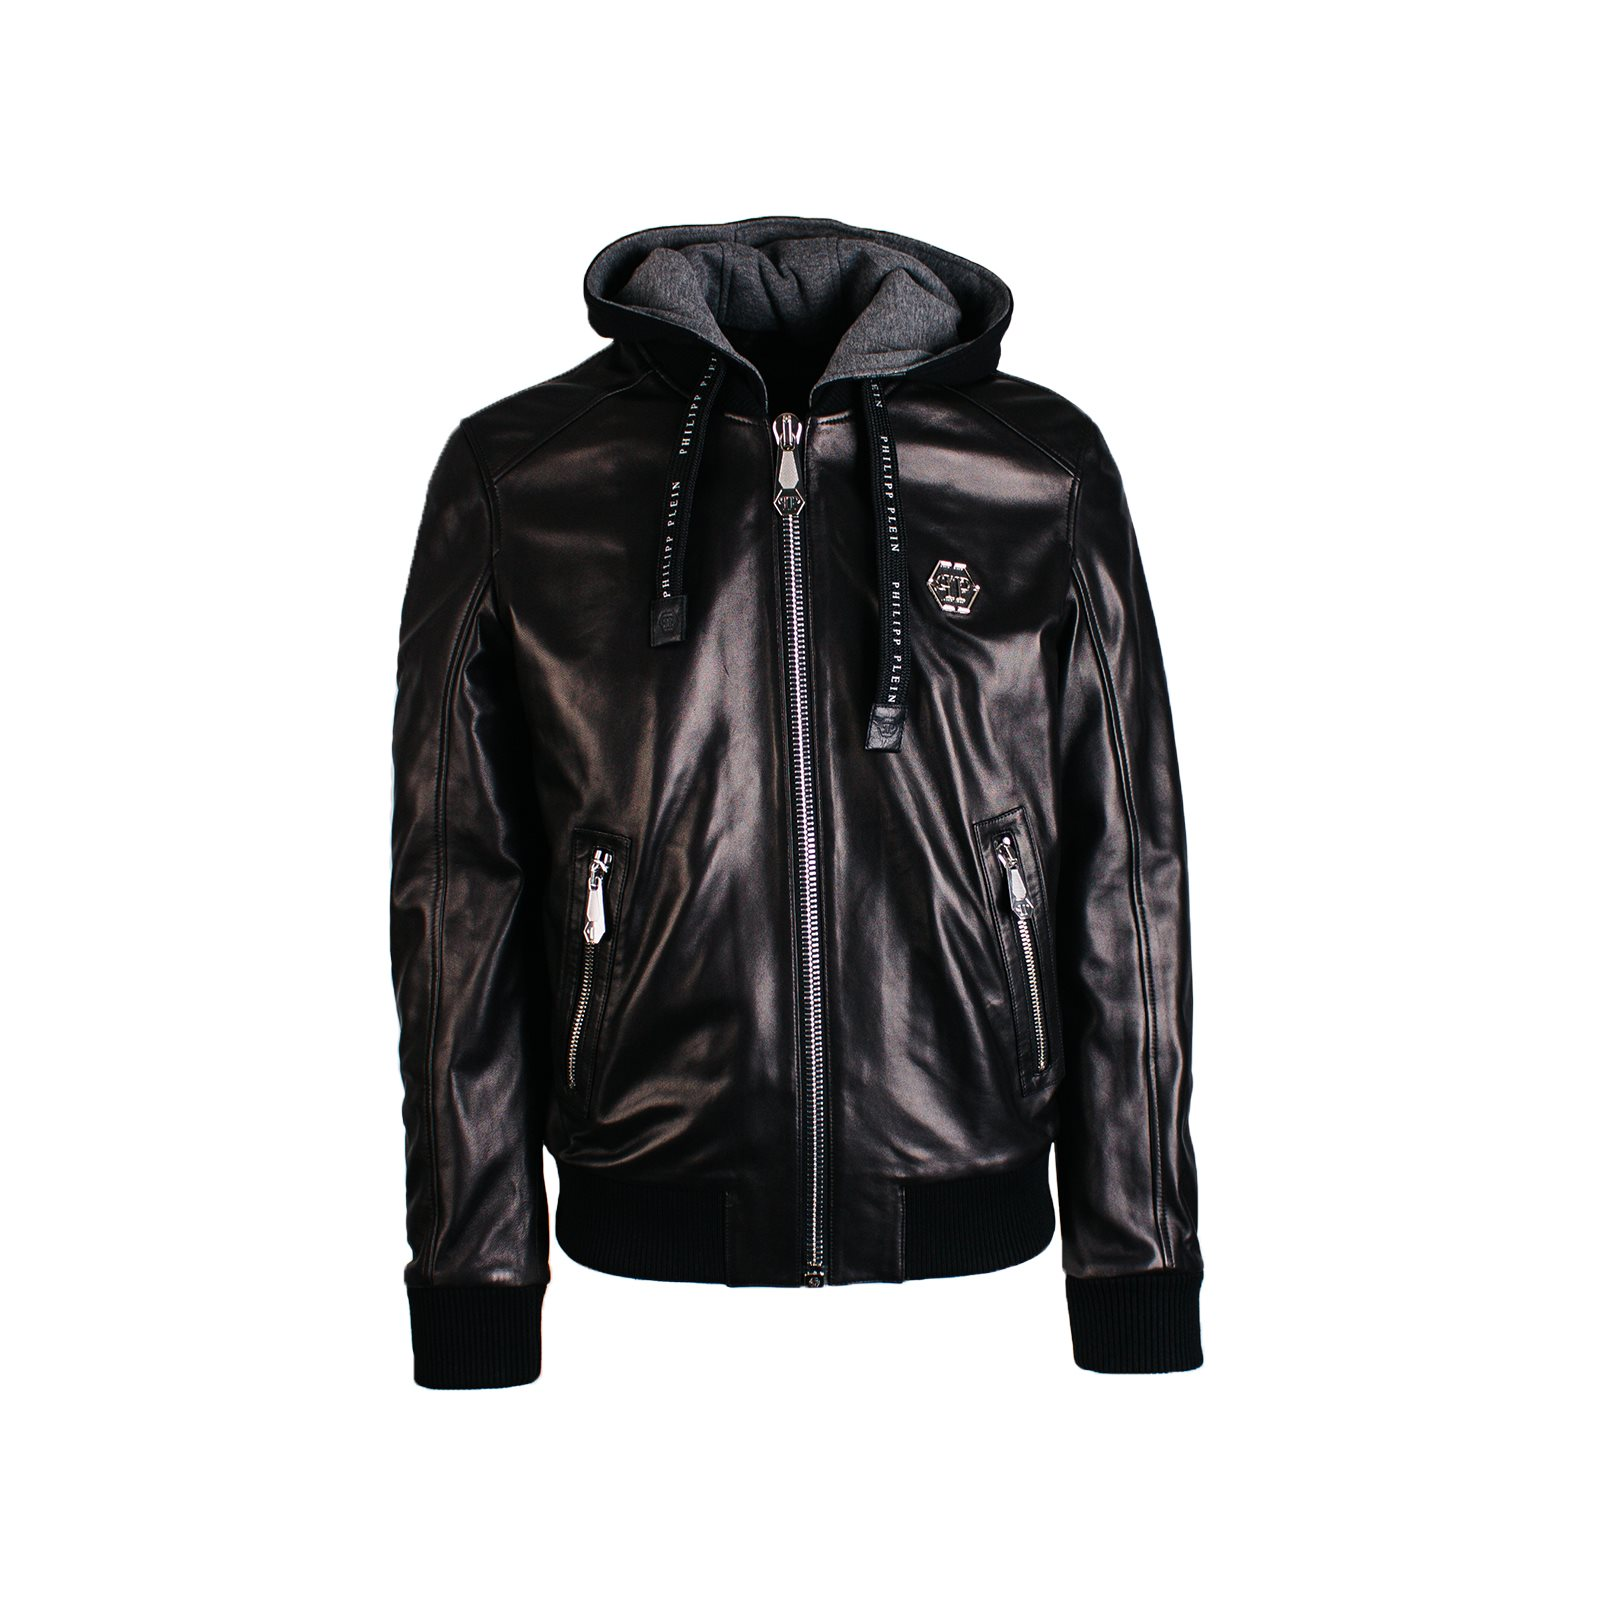 HOODED LEATHER JACKET